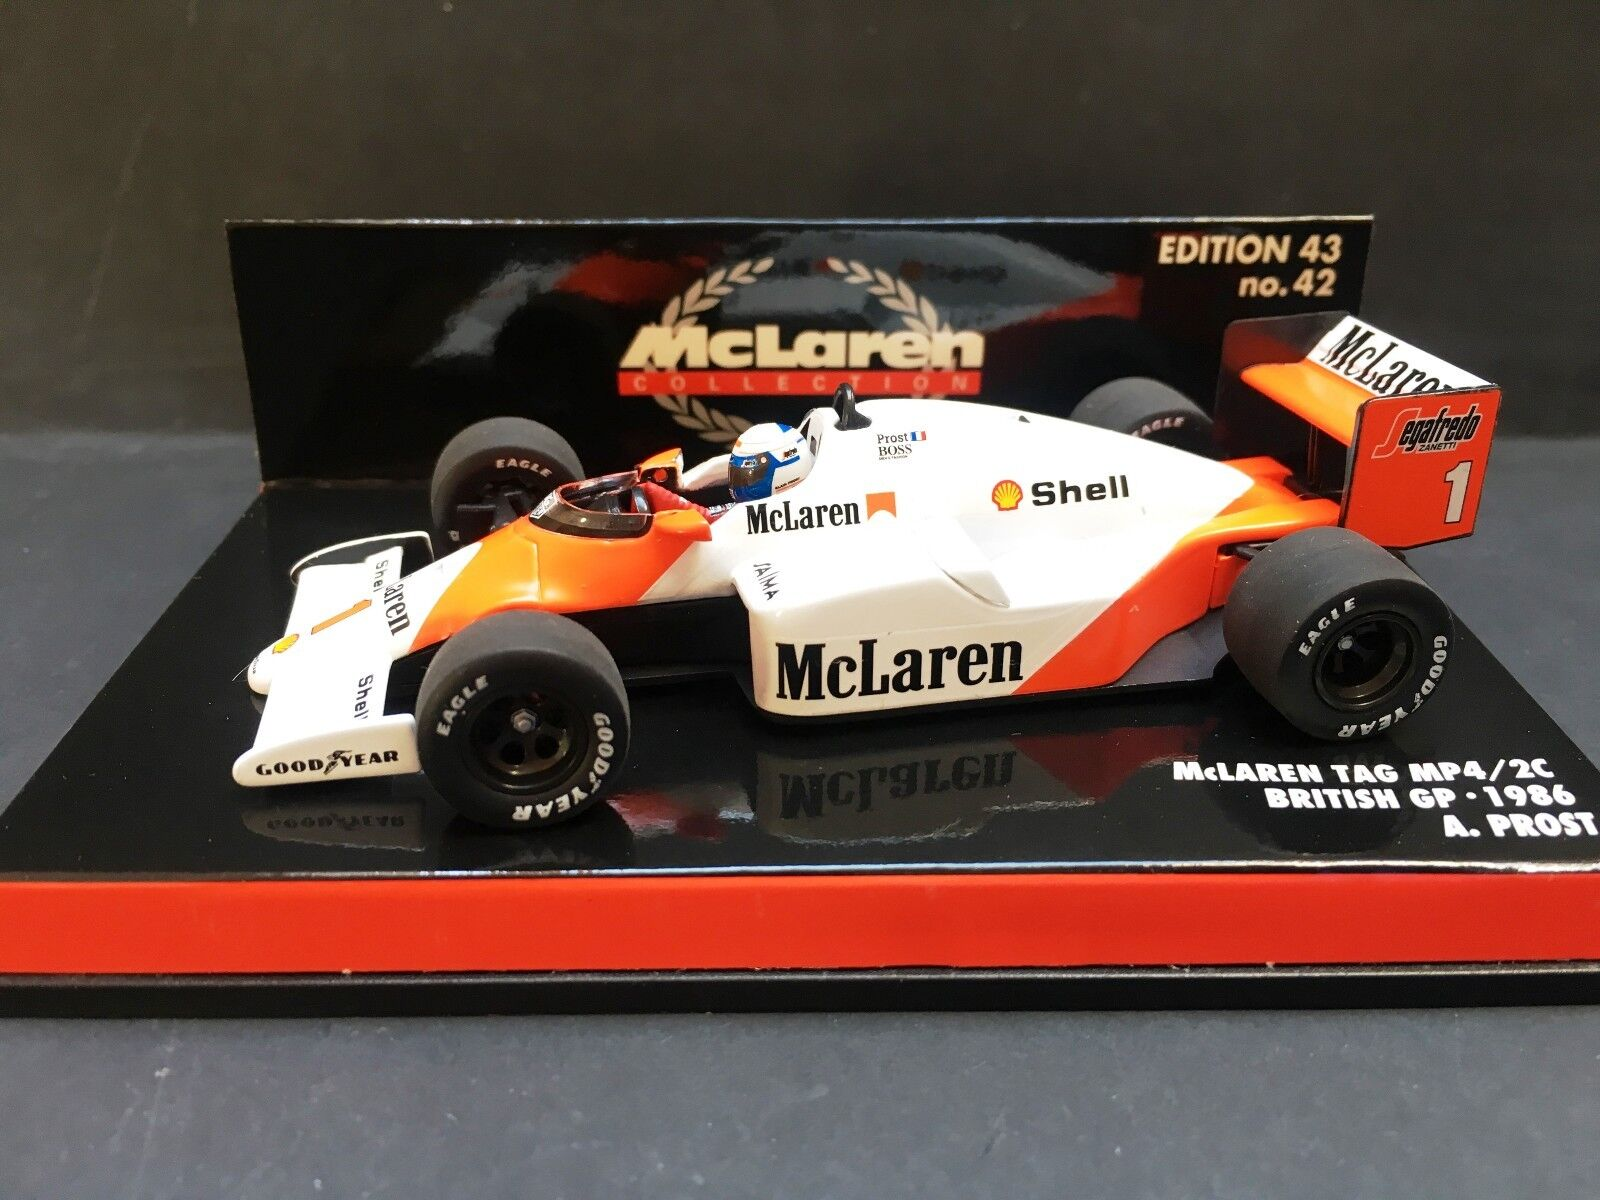 Minichamps - Alain Prost - McLaren - Mp4/2C - 1:43 - 1986 - British GP